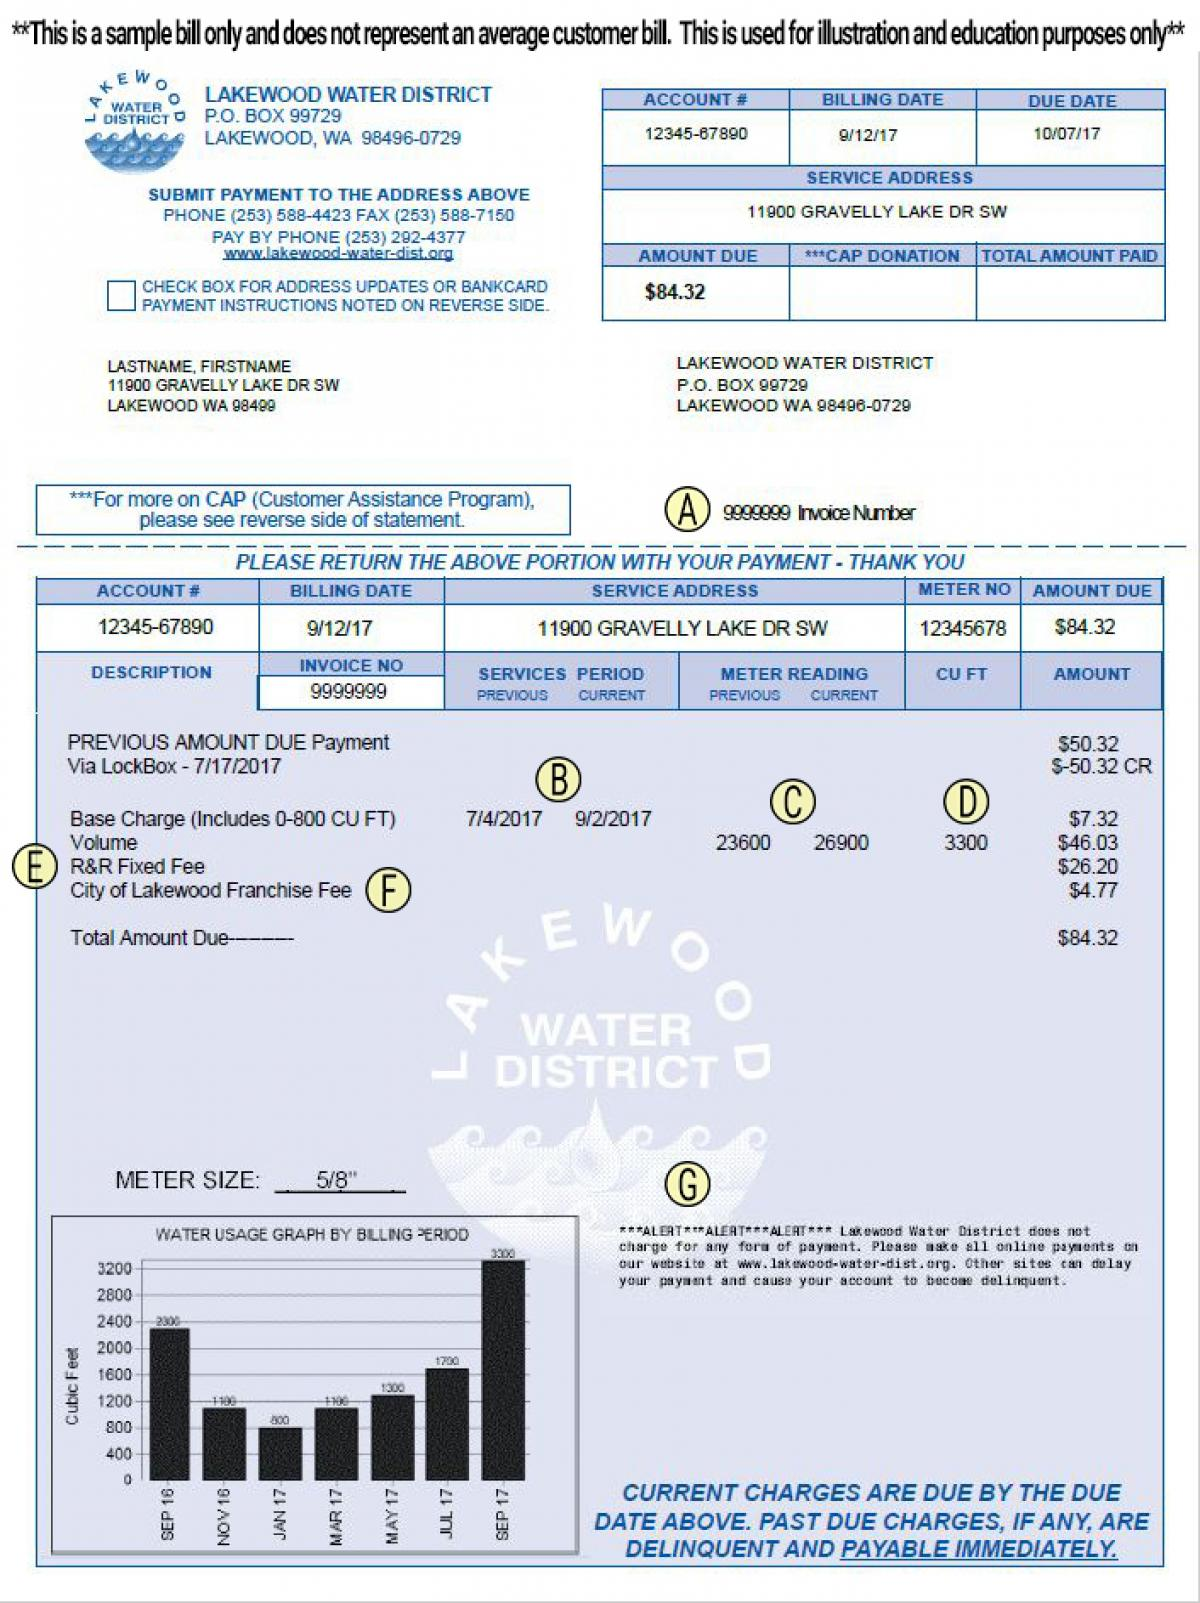 Understanding Your Bill | Lakewood Water District, Washington